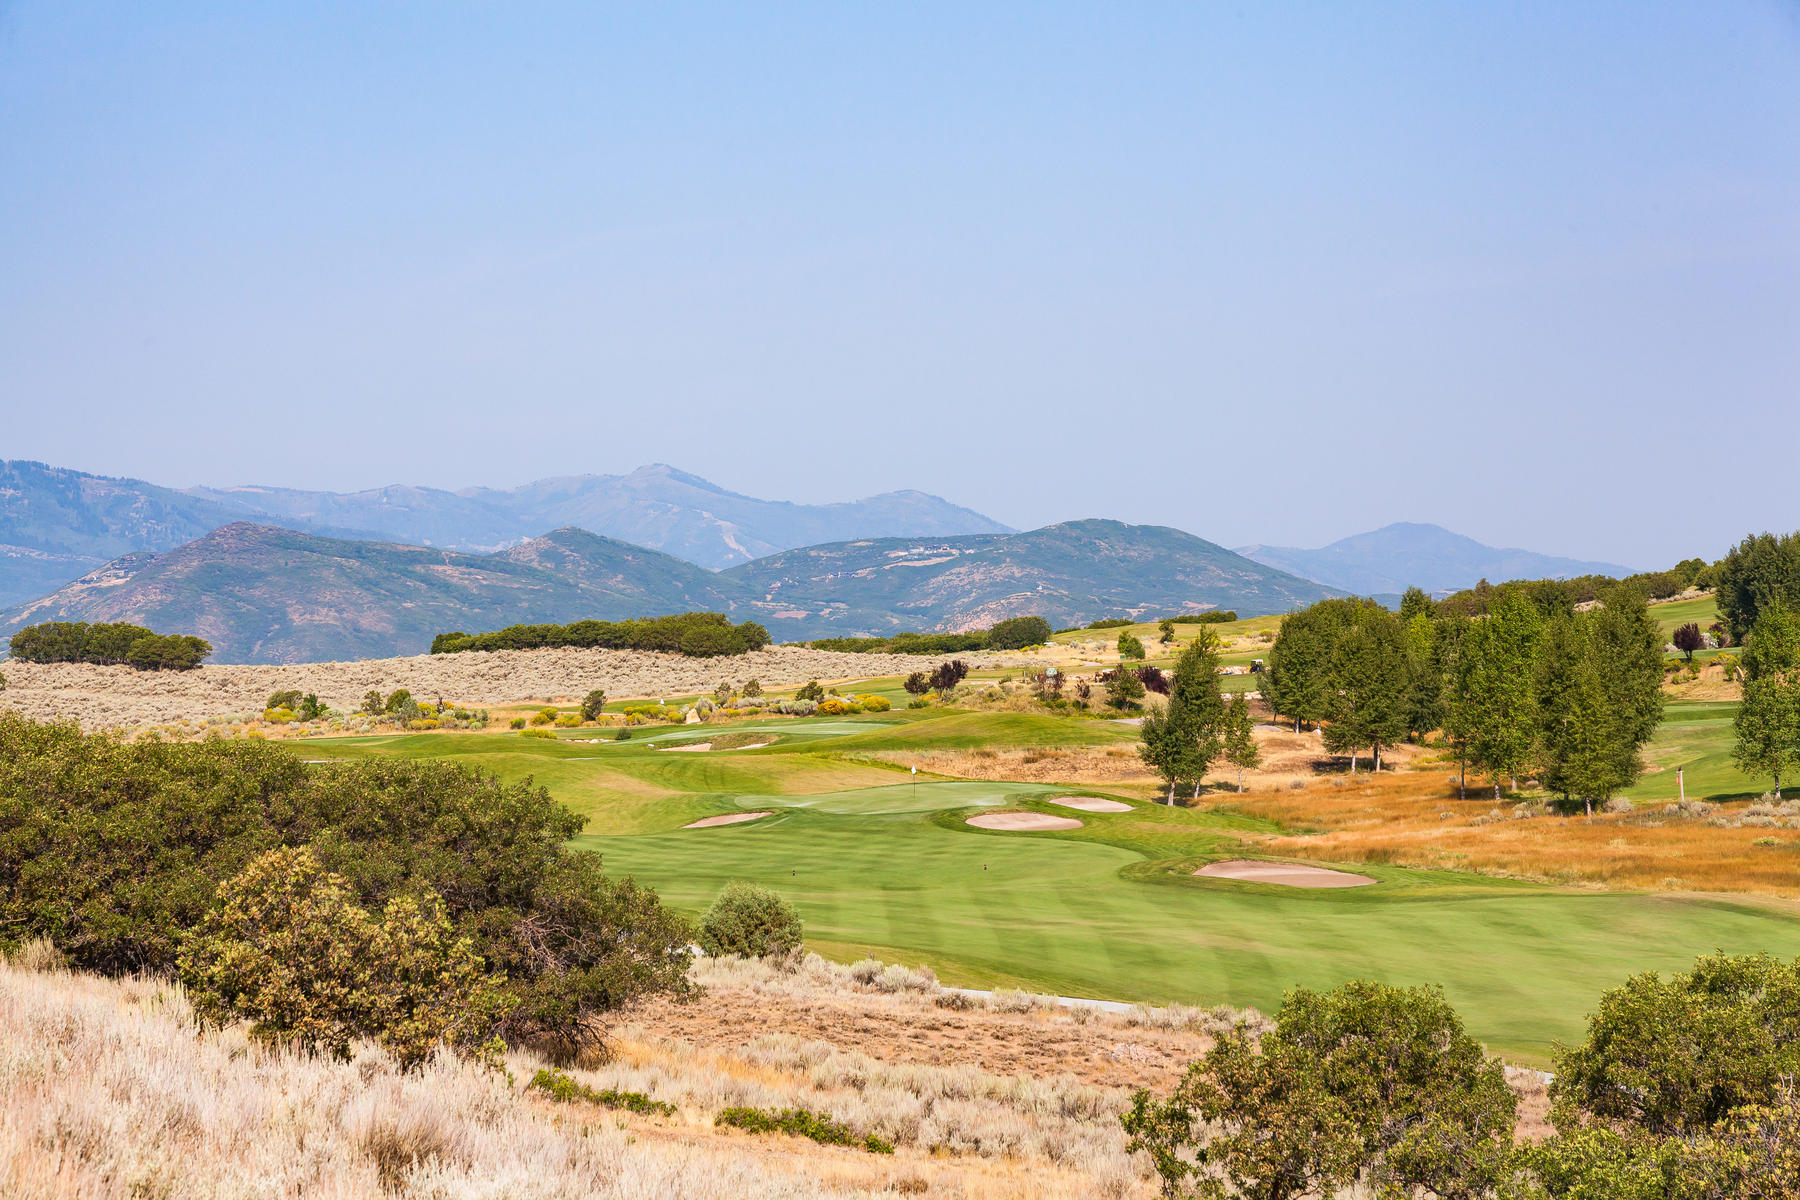 Property for Sale at Great Views and Easy Build Lot 9420 N Uinta Drive, Kamas, Utah 84036 United States